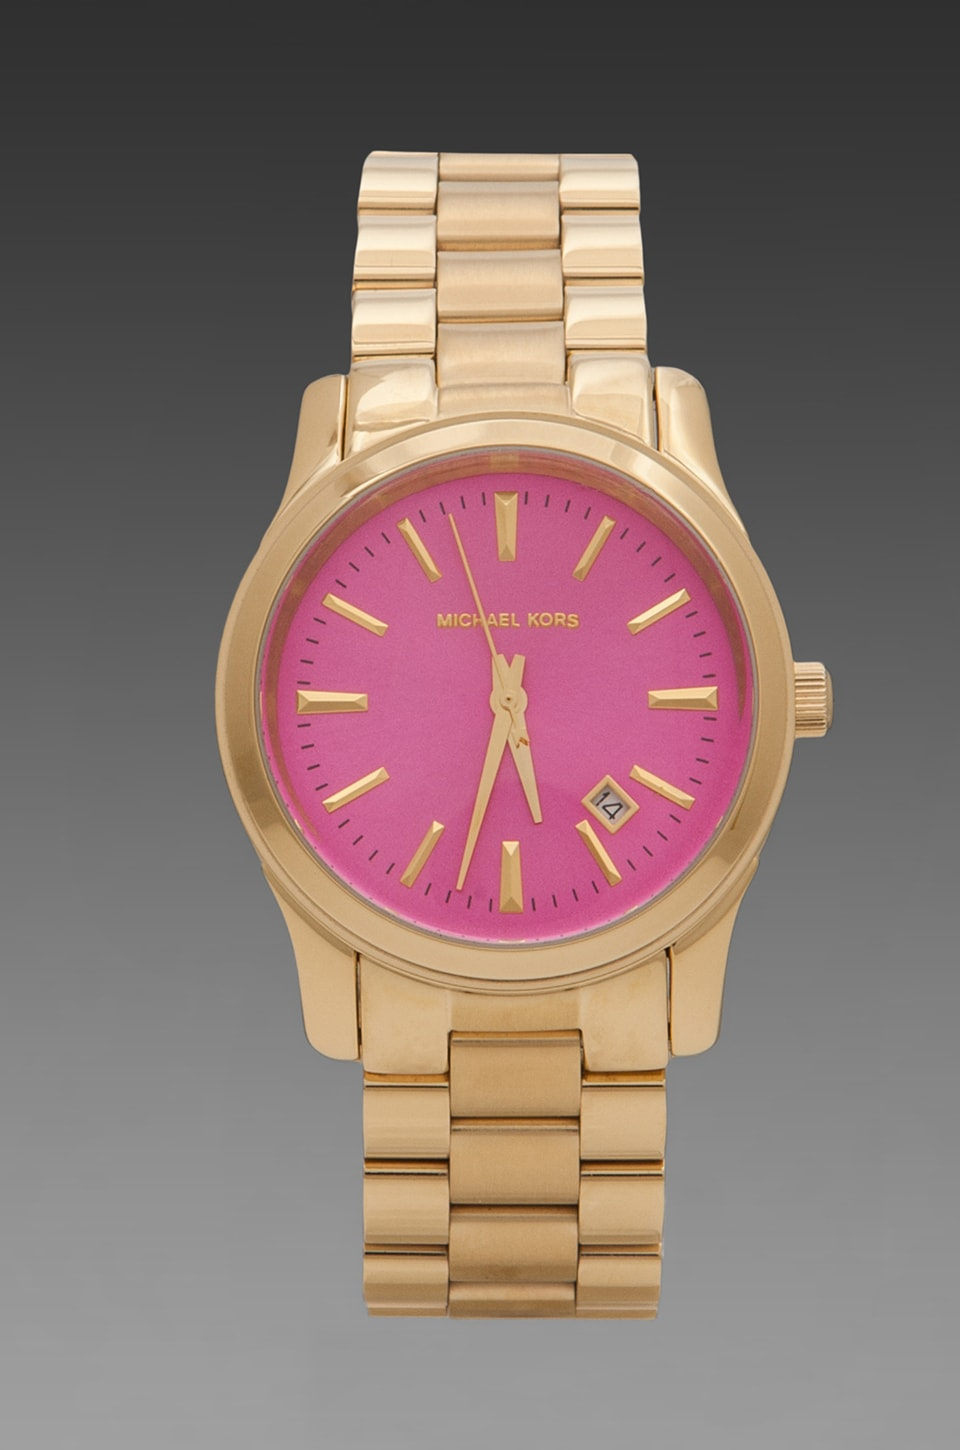 Michael Kors Runway Watch in Pink/Gold